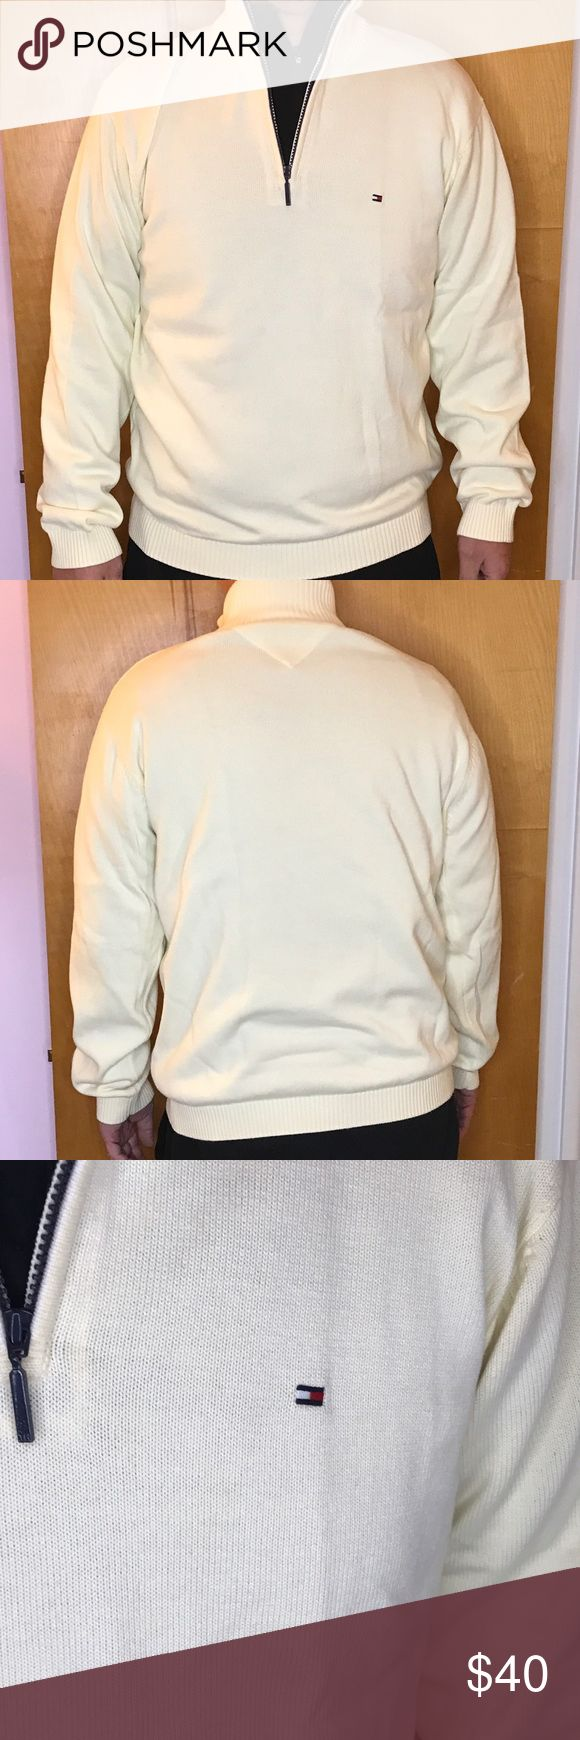 NEW MENS Tommy Hilfiger Half Zip Sweater A brand new MENS half zip sweater in cream. Perfect for night out or just a casual day out. SIZE: LARGE 🚫No Trades🚫 Tommy Hilfiger Sweaters Zip Up